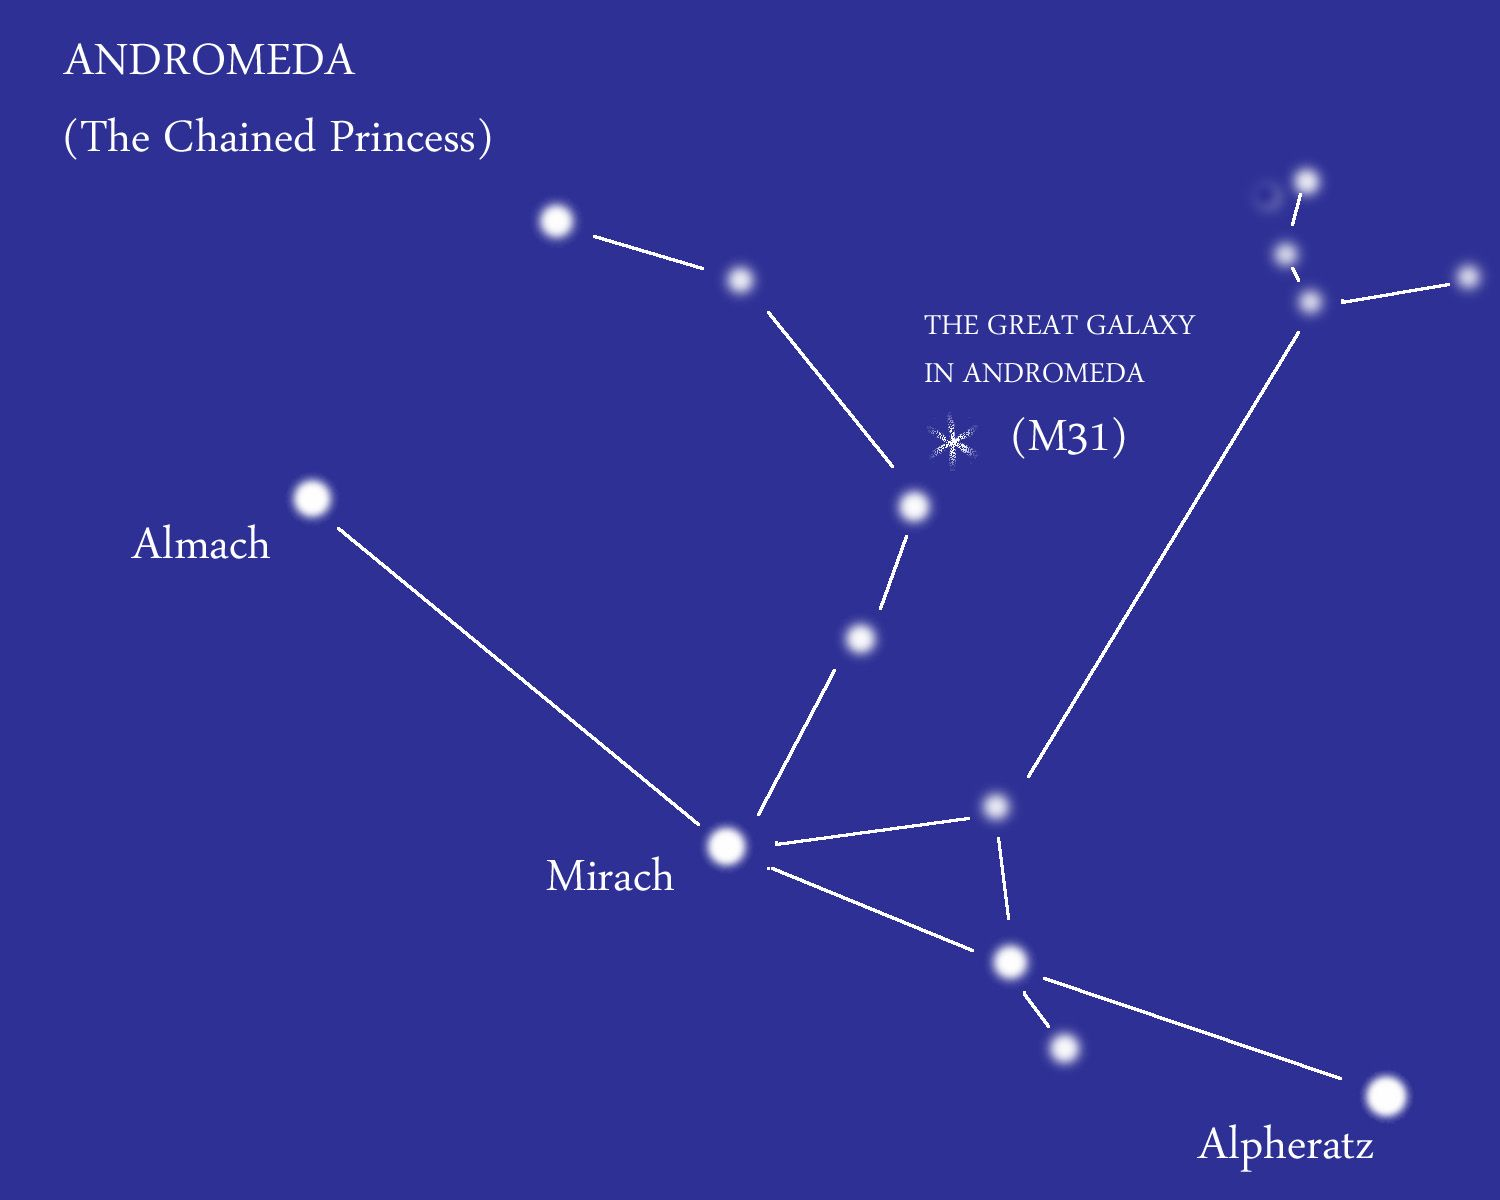 small resolution of andromeda the chained princess the constellation is best known for the andromeda galaxy m31 which is the closest galaxy to our own milky way